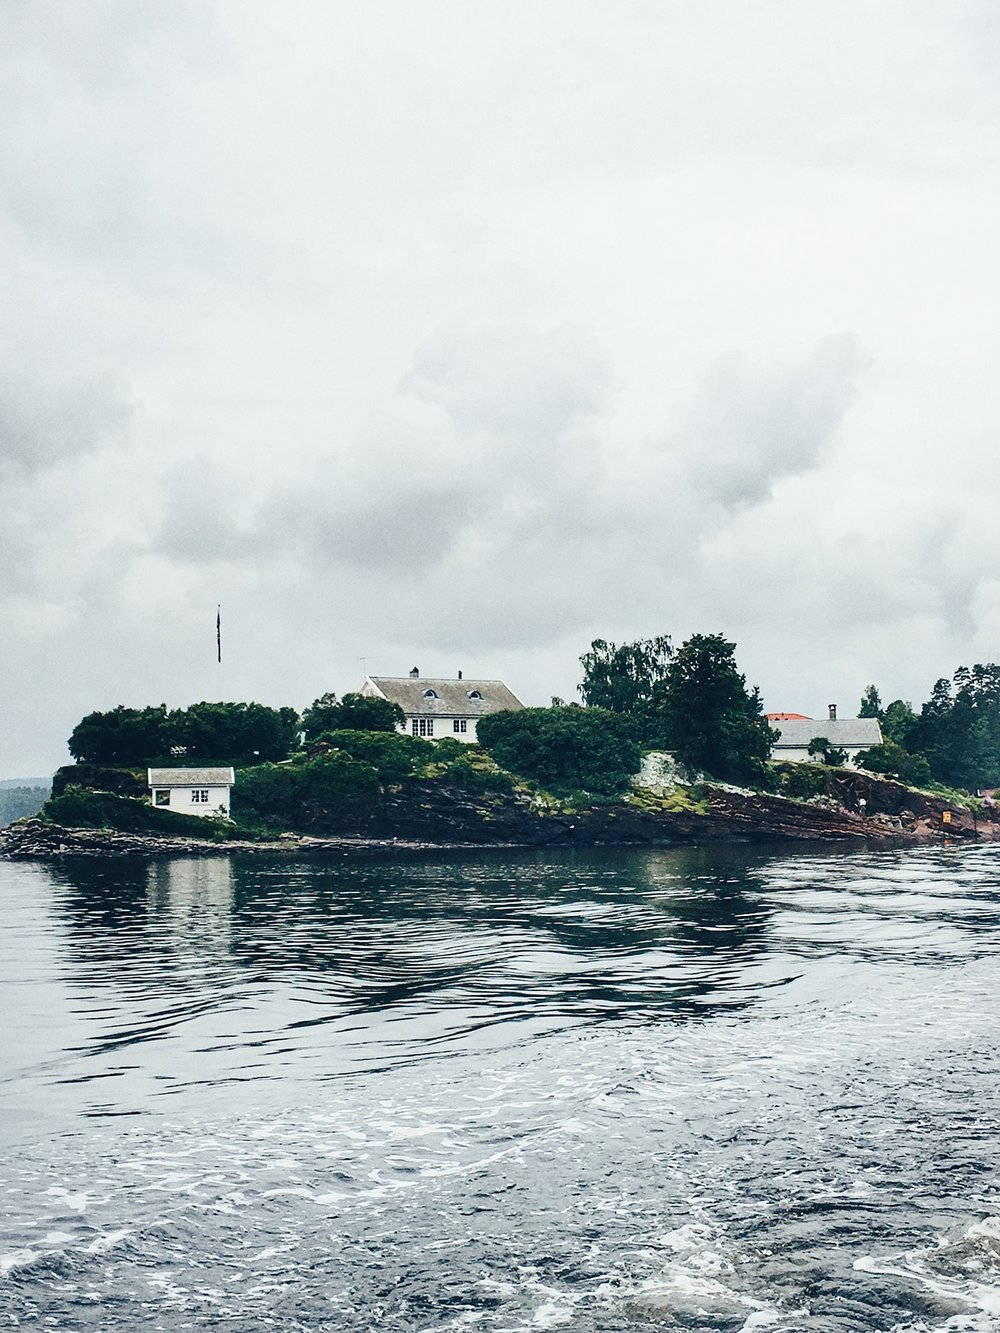 A privately owned island in the Oslo Fjords (Oslo, Norway)